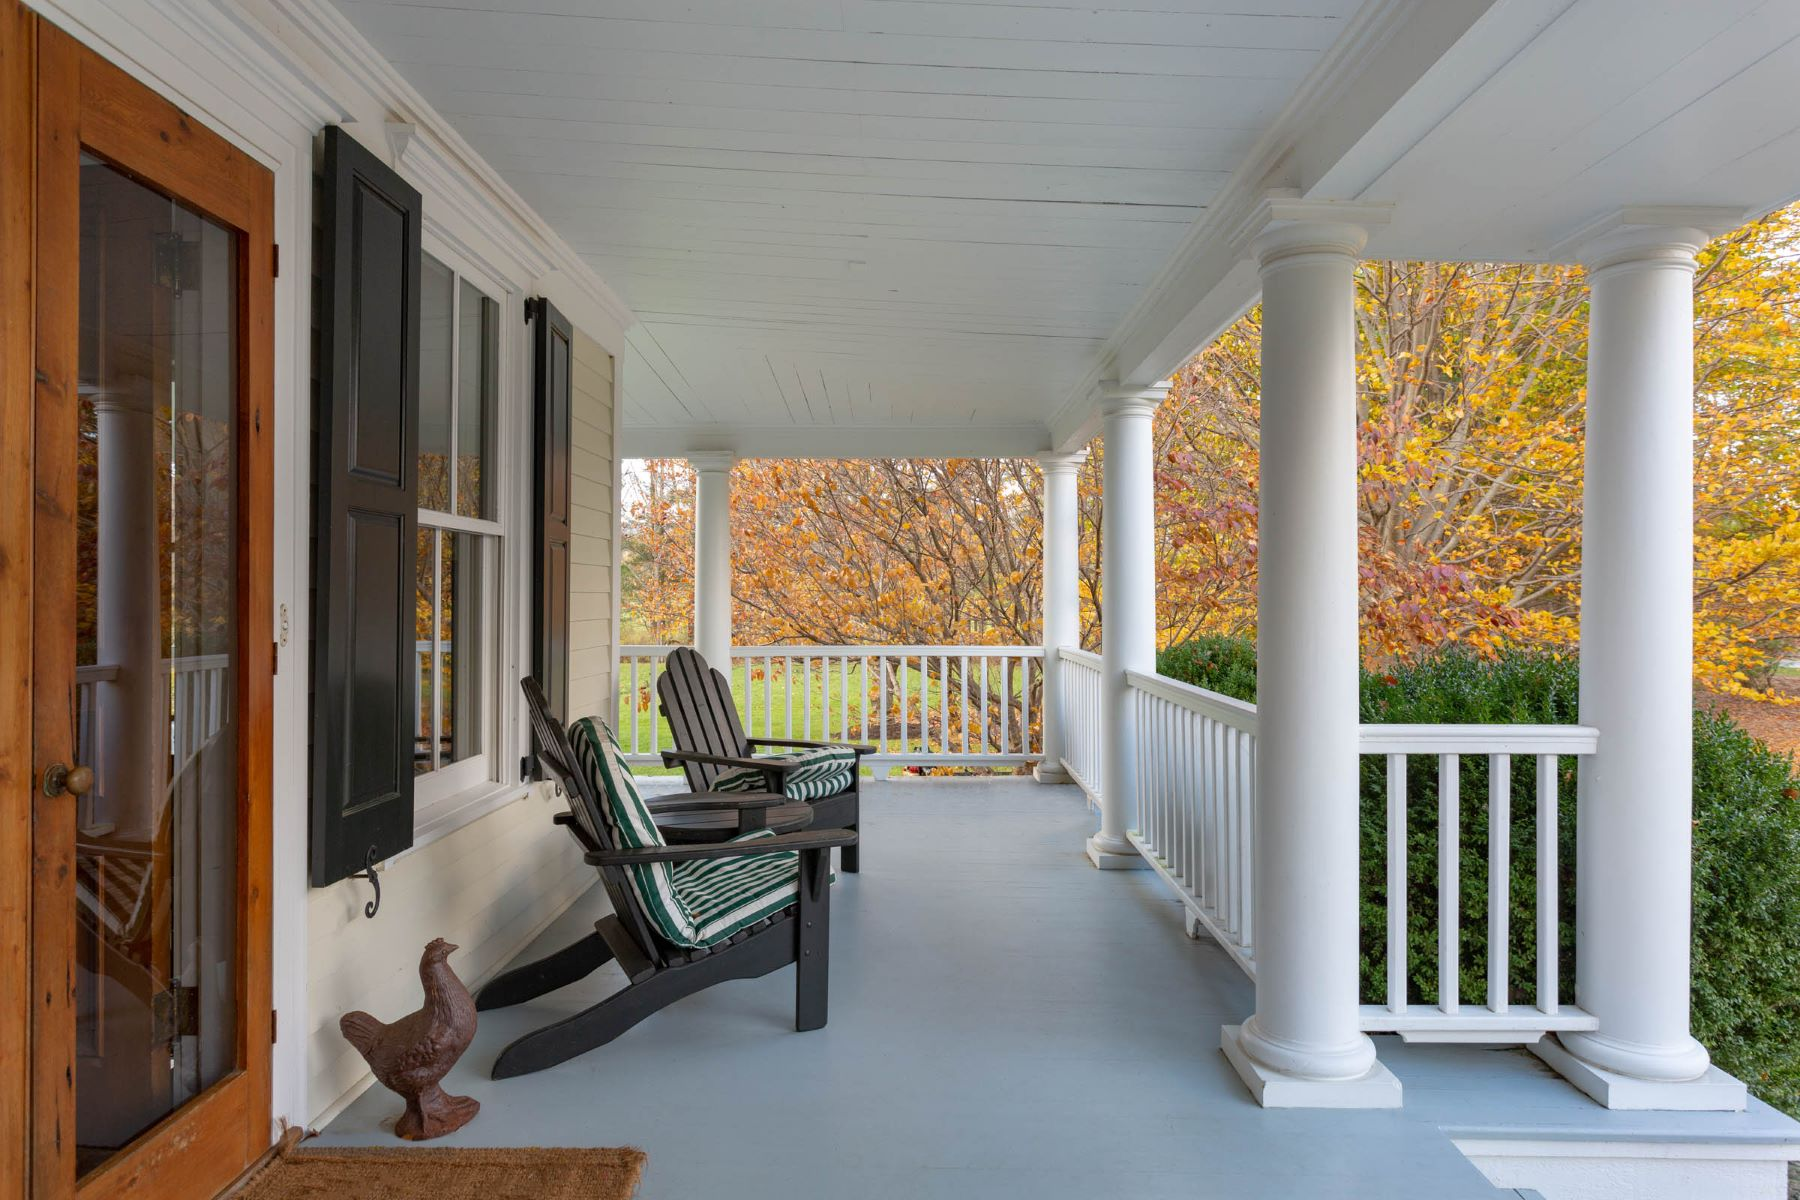 Single Family Homes for Sale at One of the Great Estates: Taconic Farm 168 Taconic Road Salisbury, Connecticut 06068 United States